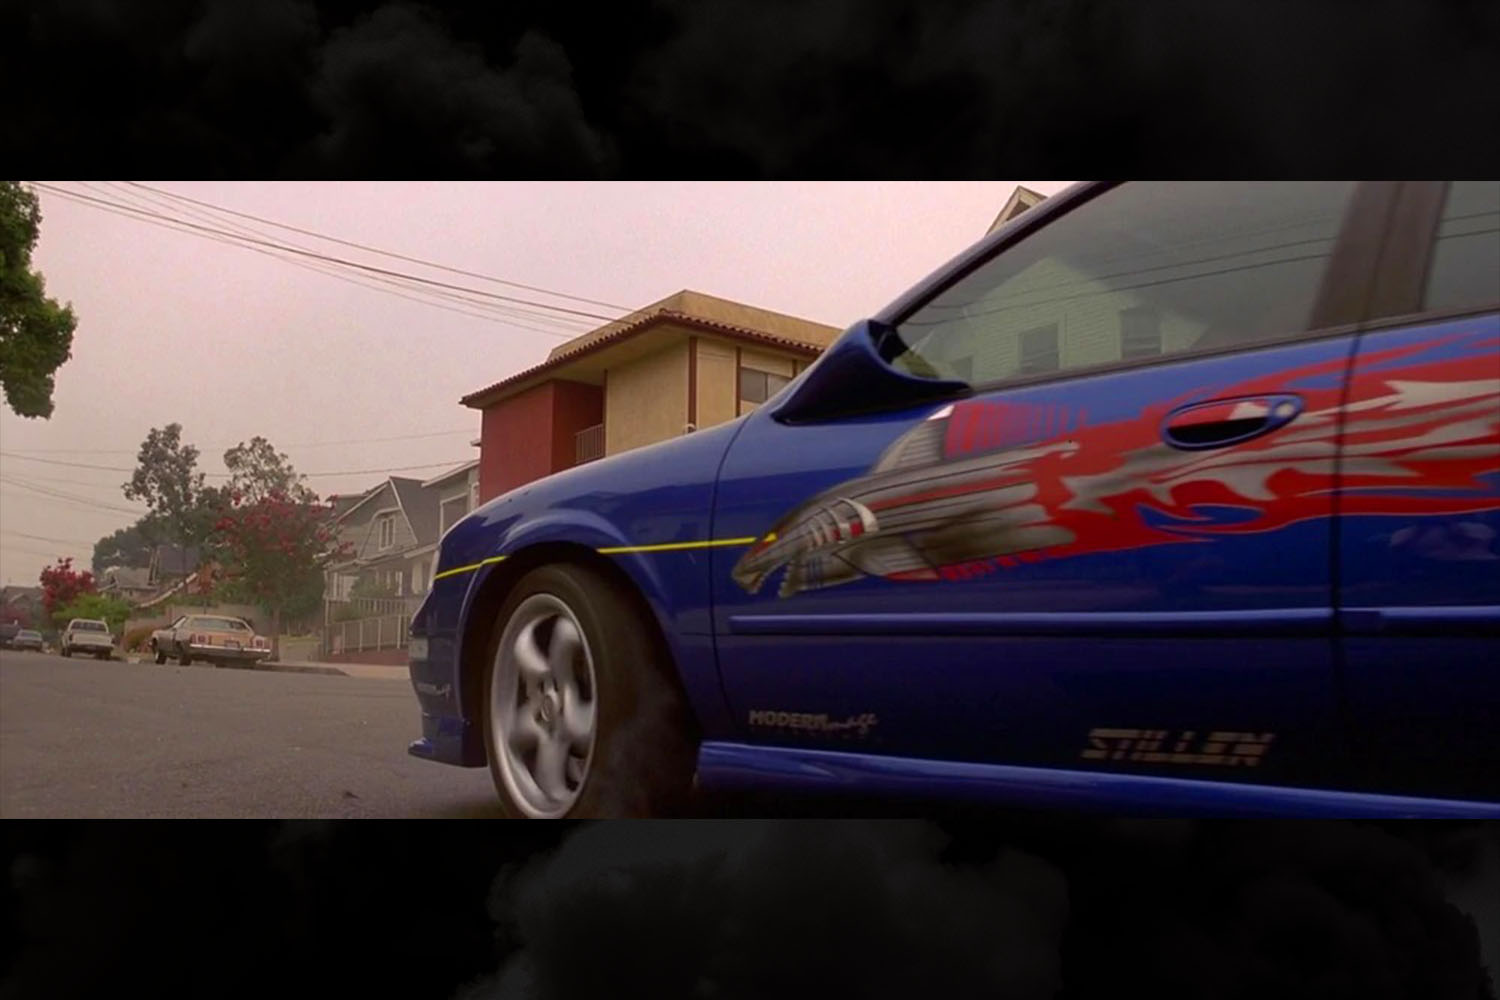 The shark torpedo graphics on the side of Vince's blue 1999 Nissan Maxima in the original The Fast and the Furious